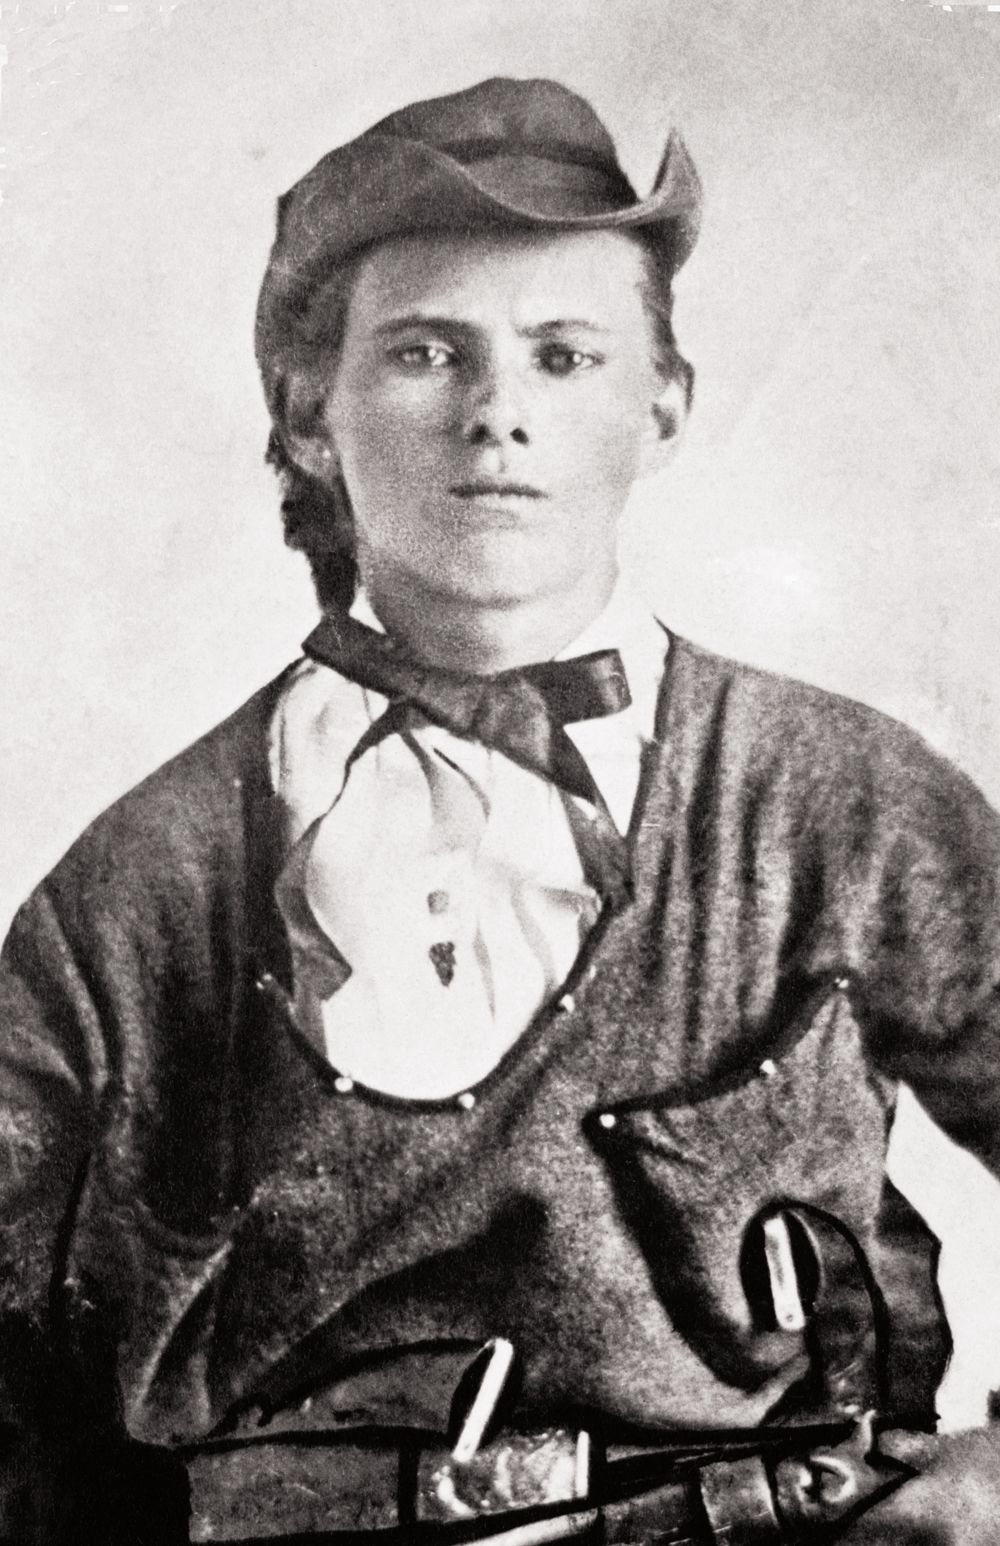 Jesse James around age 16, during his time as a ...